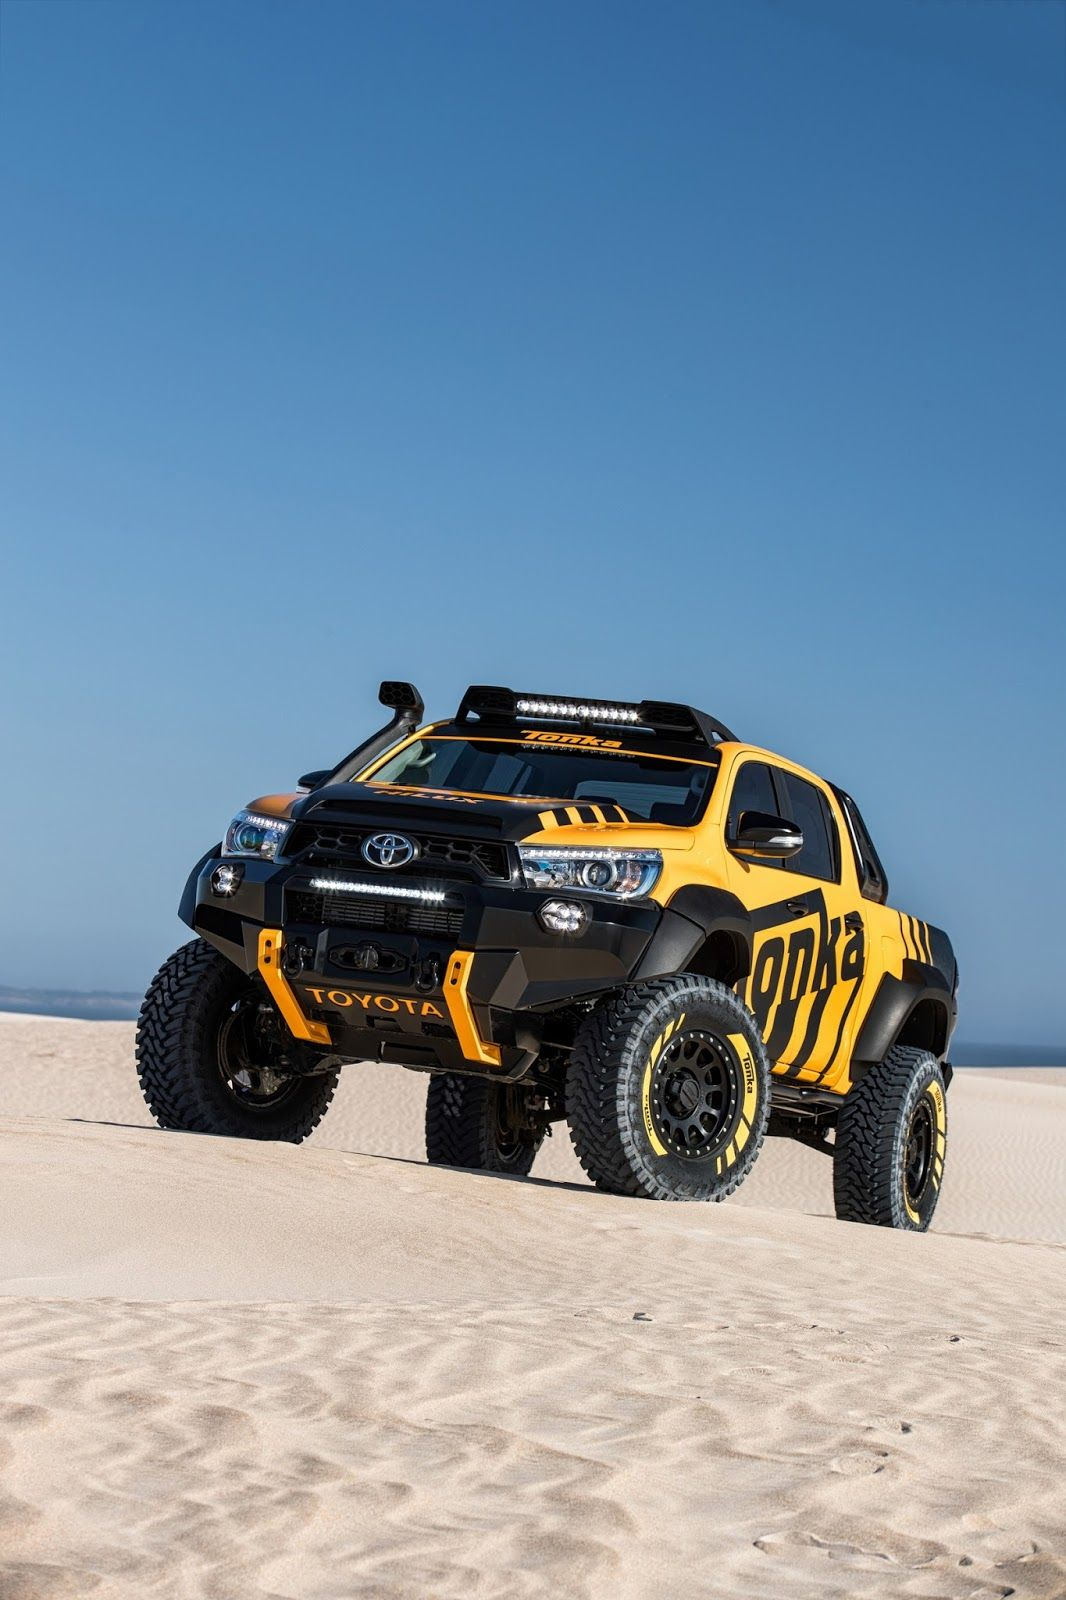 Toyota Hilux Tonka Concept Is A Dream Toy For Adults | Carscoops